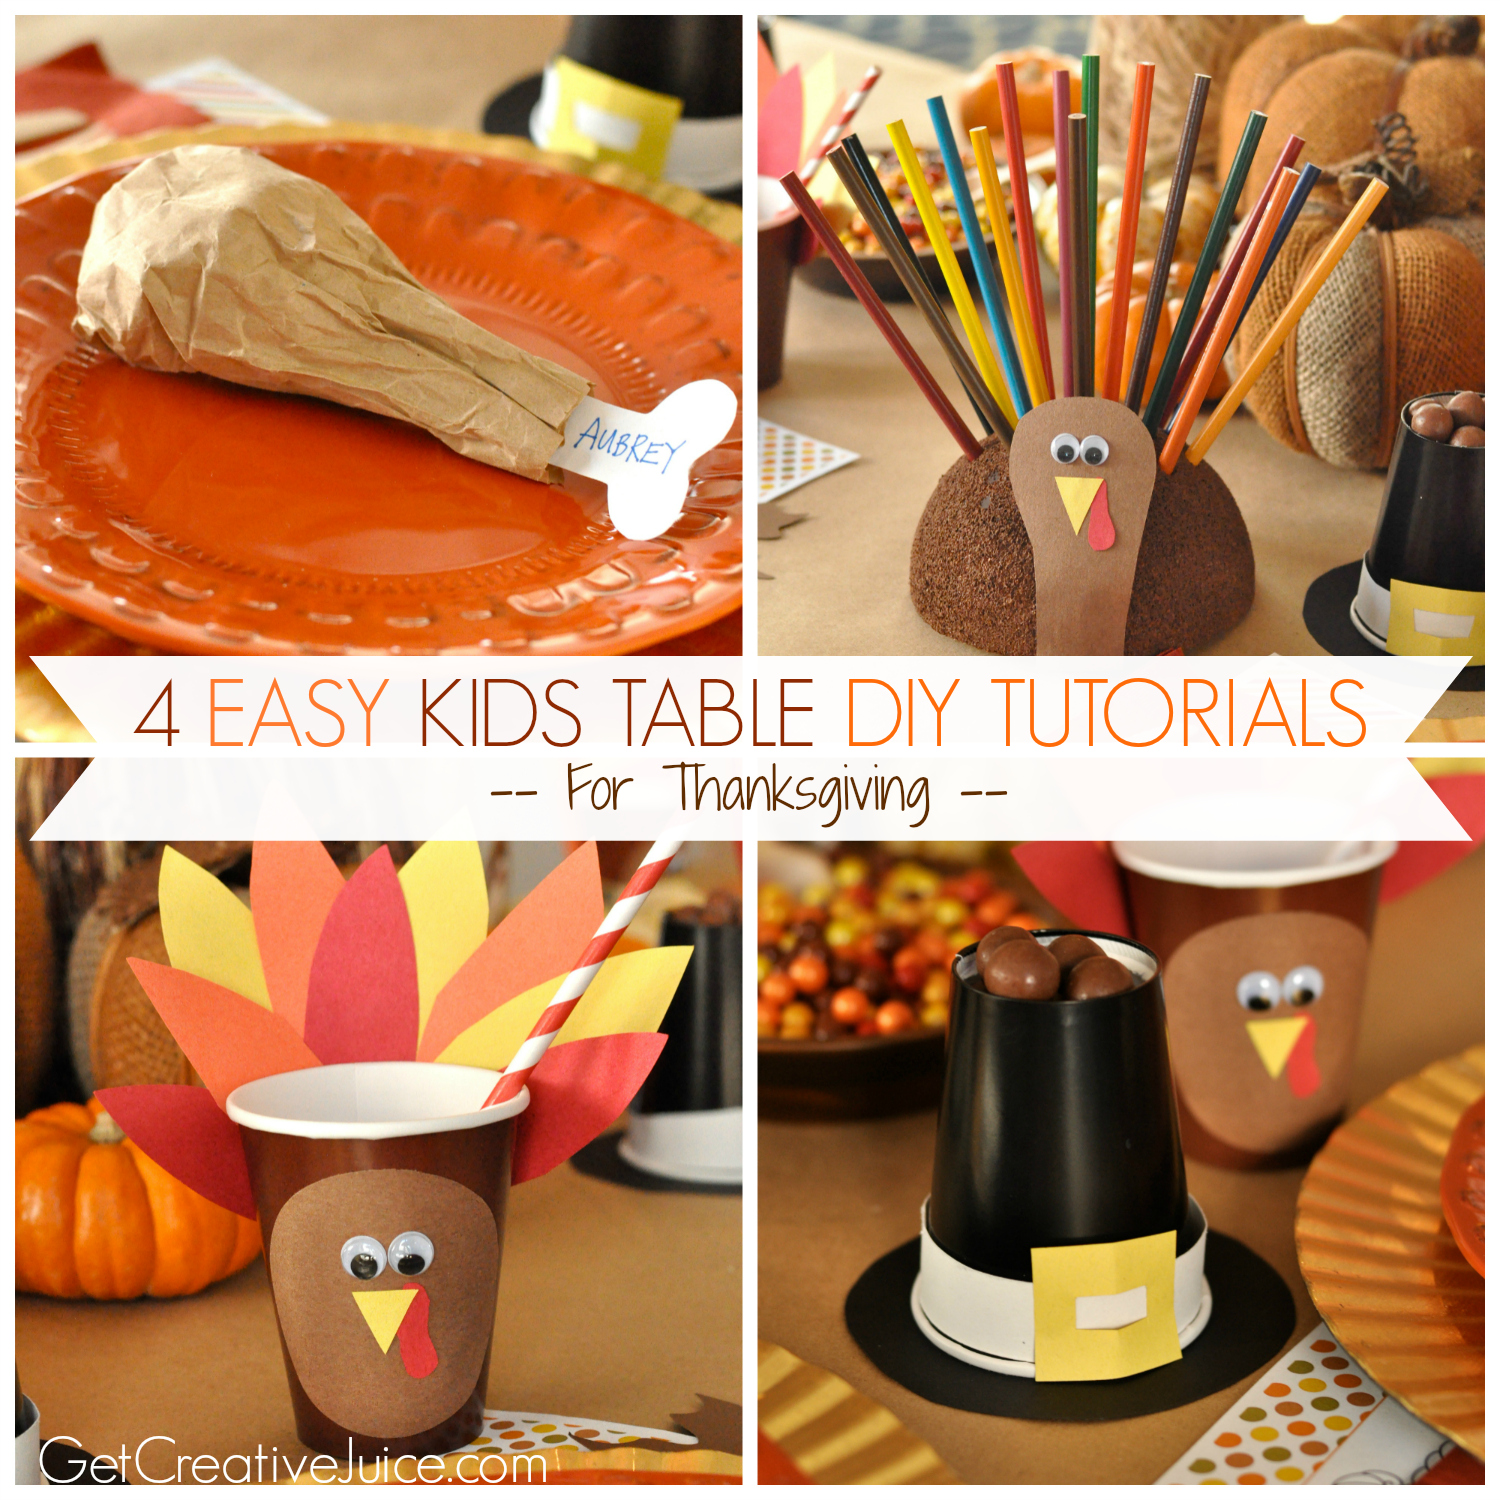 4 Easy Kids Thanksgiving Table Craft Tutorials Creative